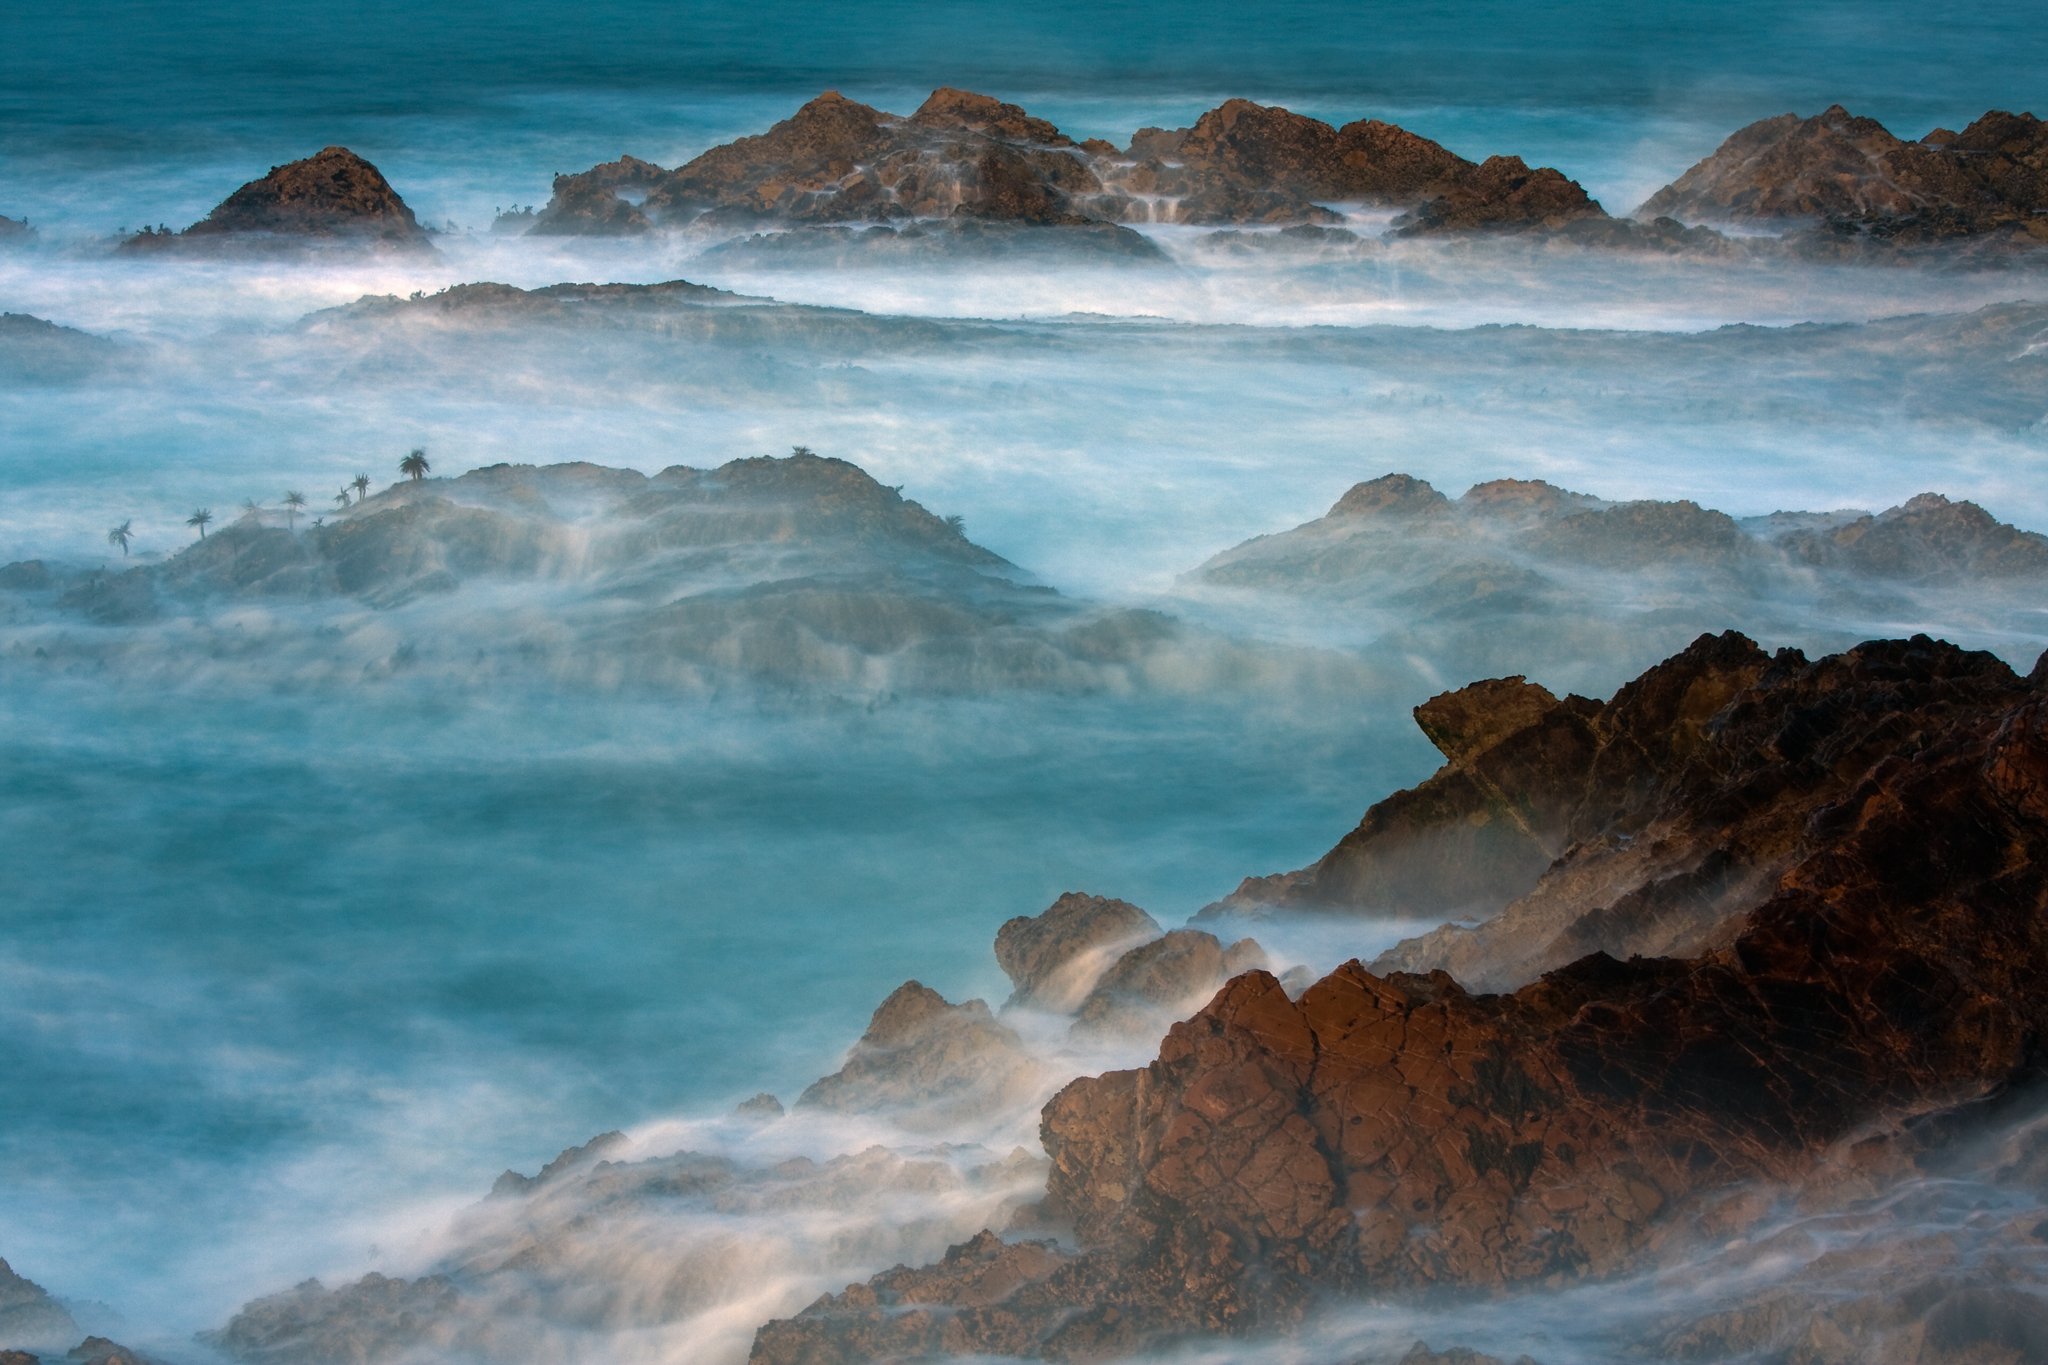 Montana de oro state park coastline has many photographic opportunities. A long exposure transformed the crashing waves to a fog like mist.